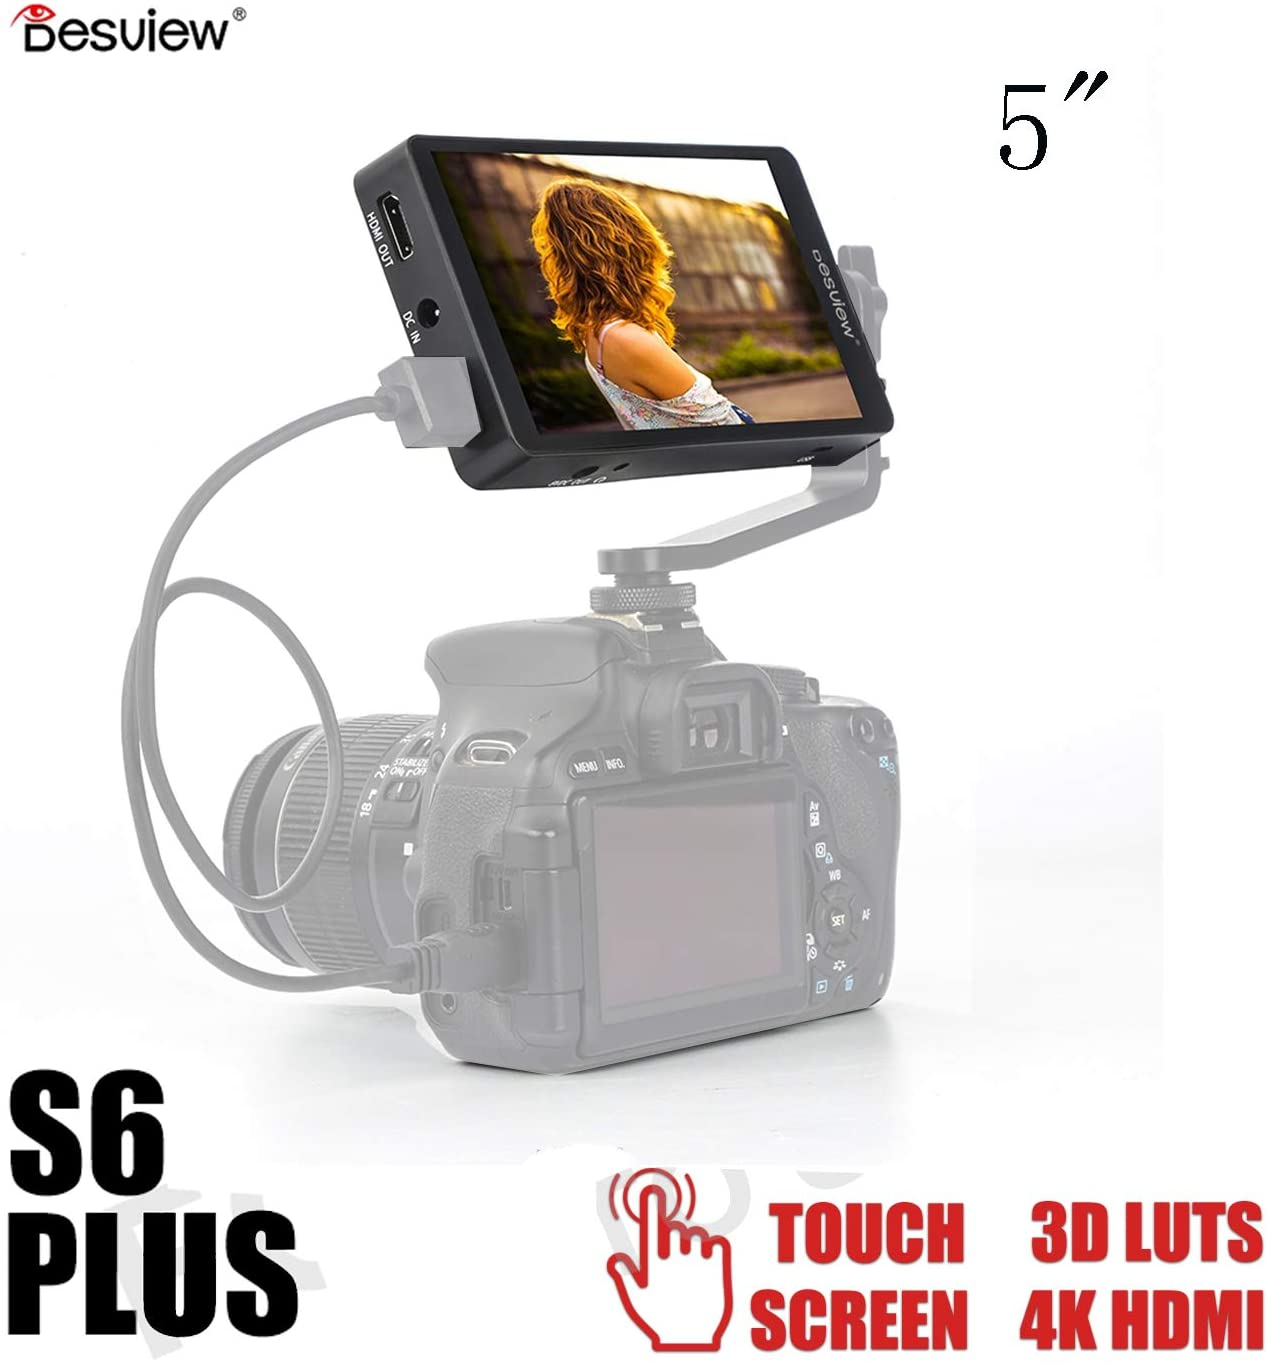 Destview S6 Plus Monitor 5.5 Inch Full Touch Screen 3D LUT Field Monitor 4K HDMI FHD 1080P On DSLR Camera